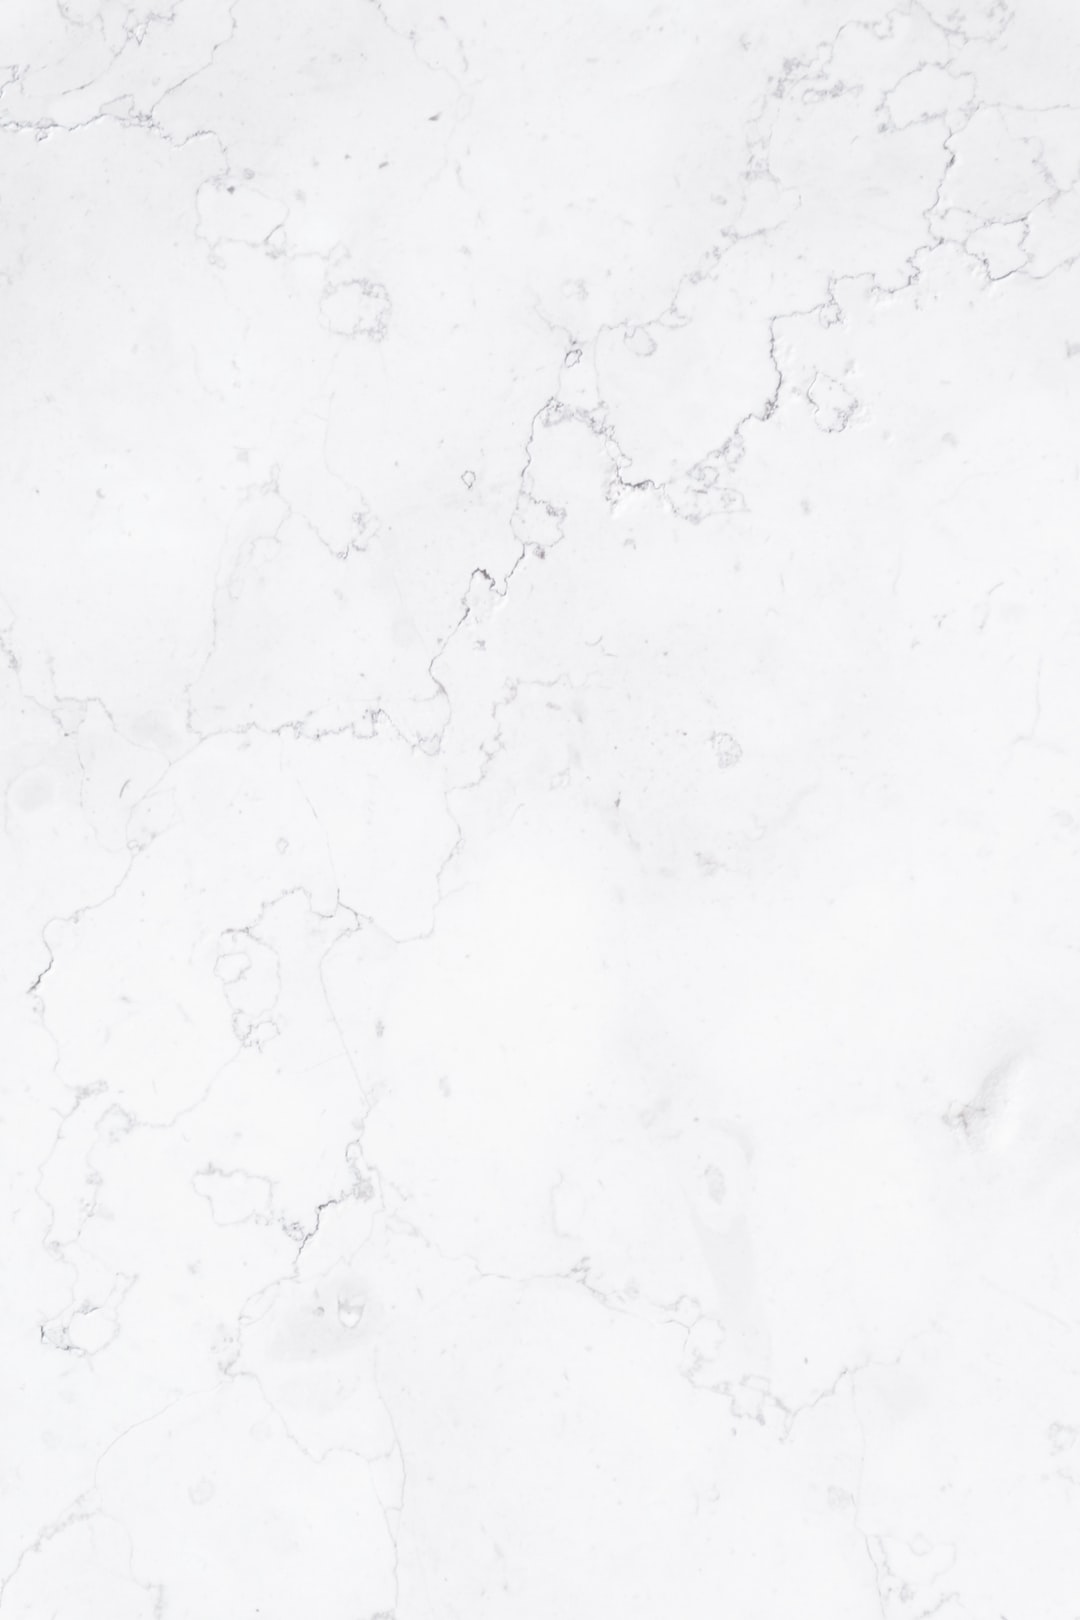 Black And White Marble Wallpaper Posted By Ryan Peltier